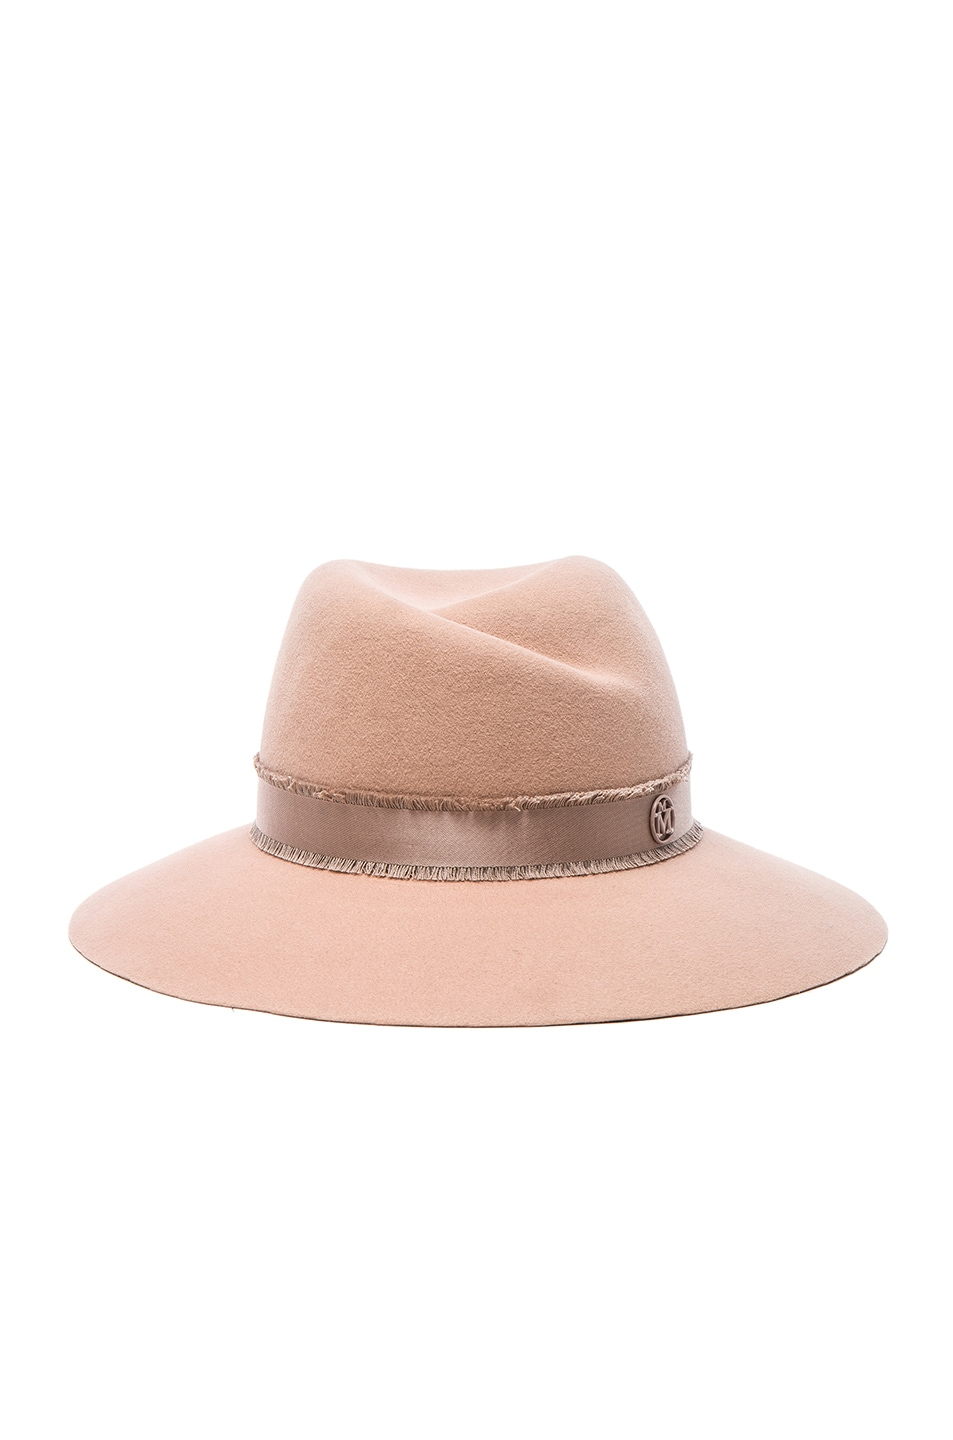 Image 1 of Maison Michel Virginie Hat in Bunker Beige